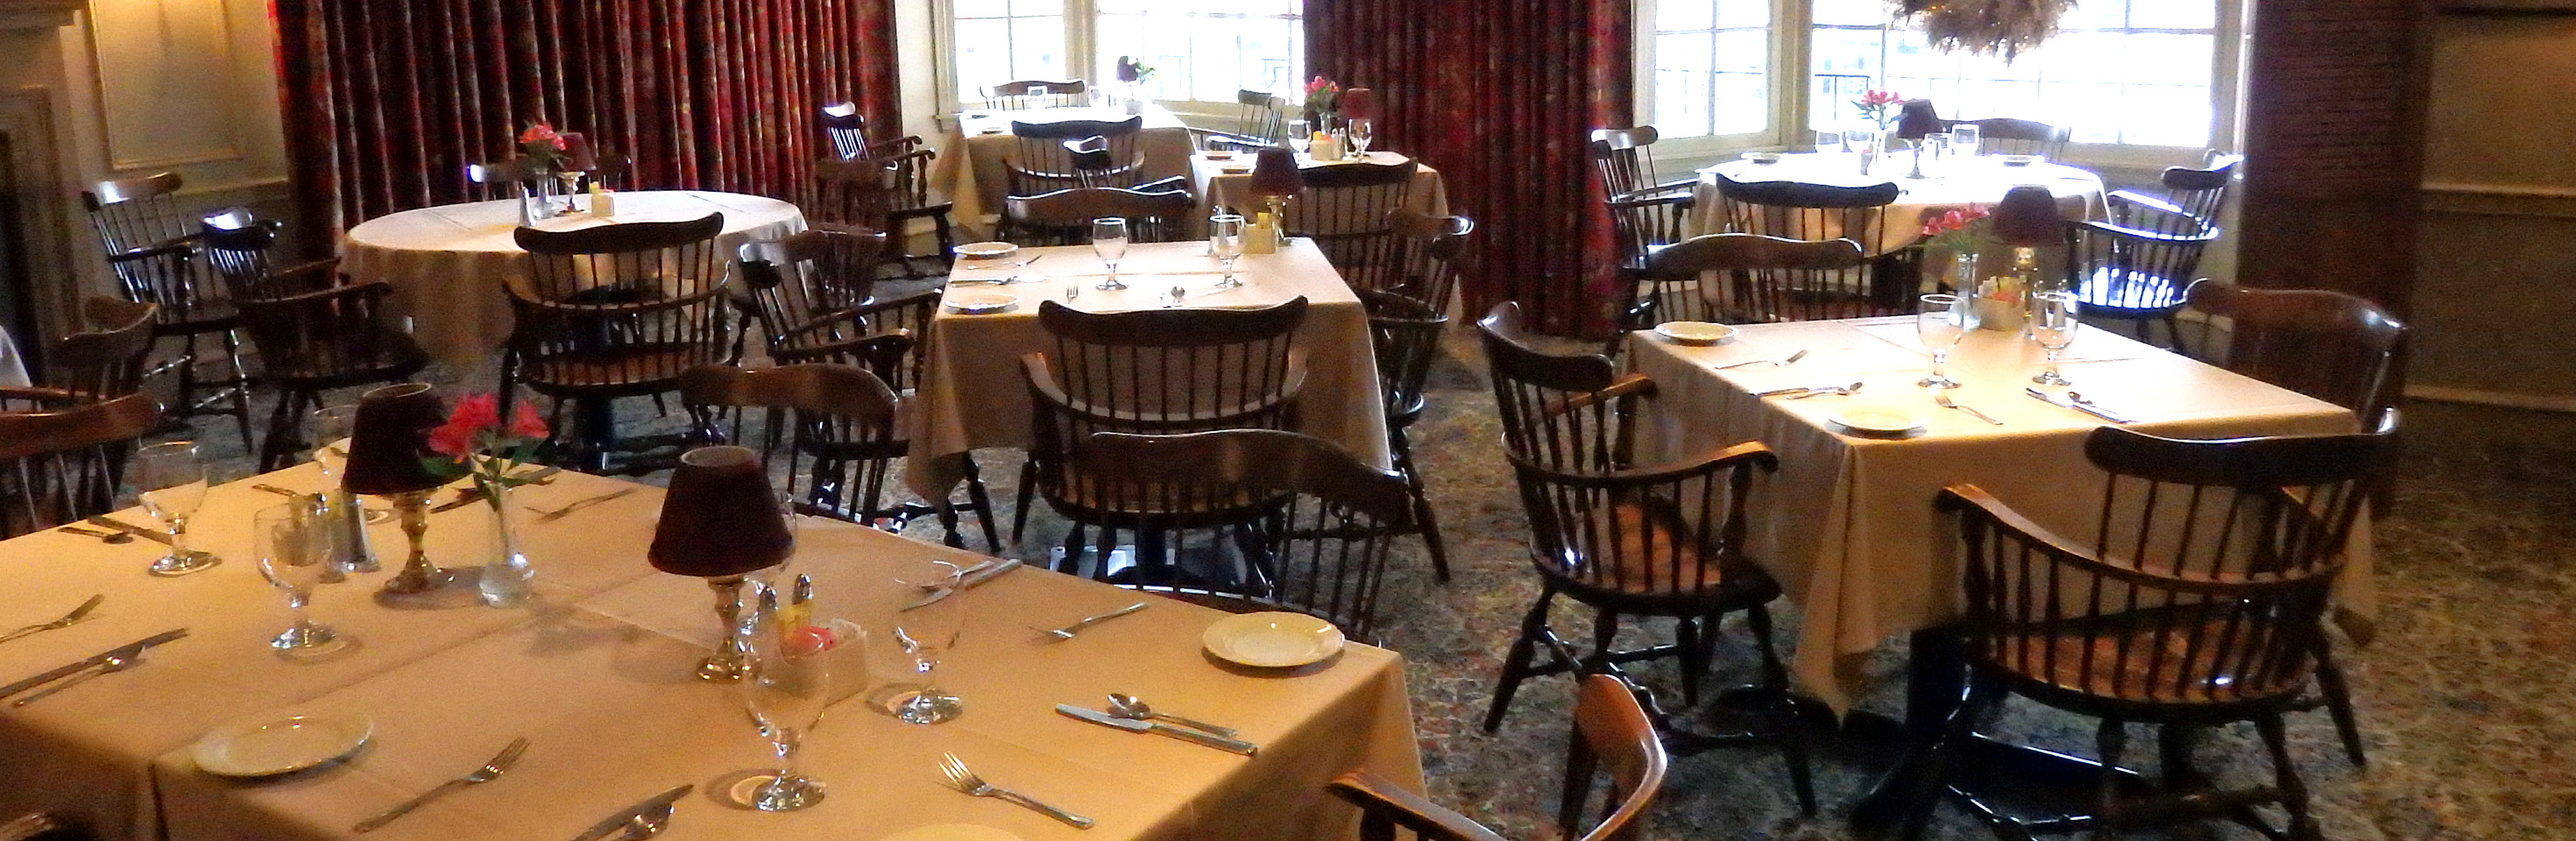 Kennett Square Inn Dining Room